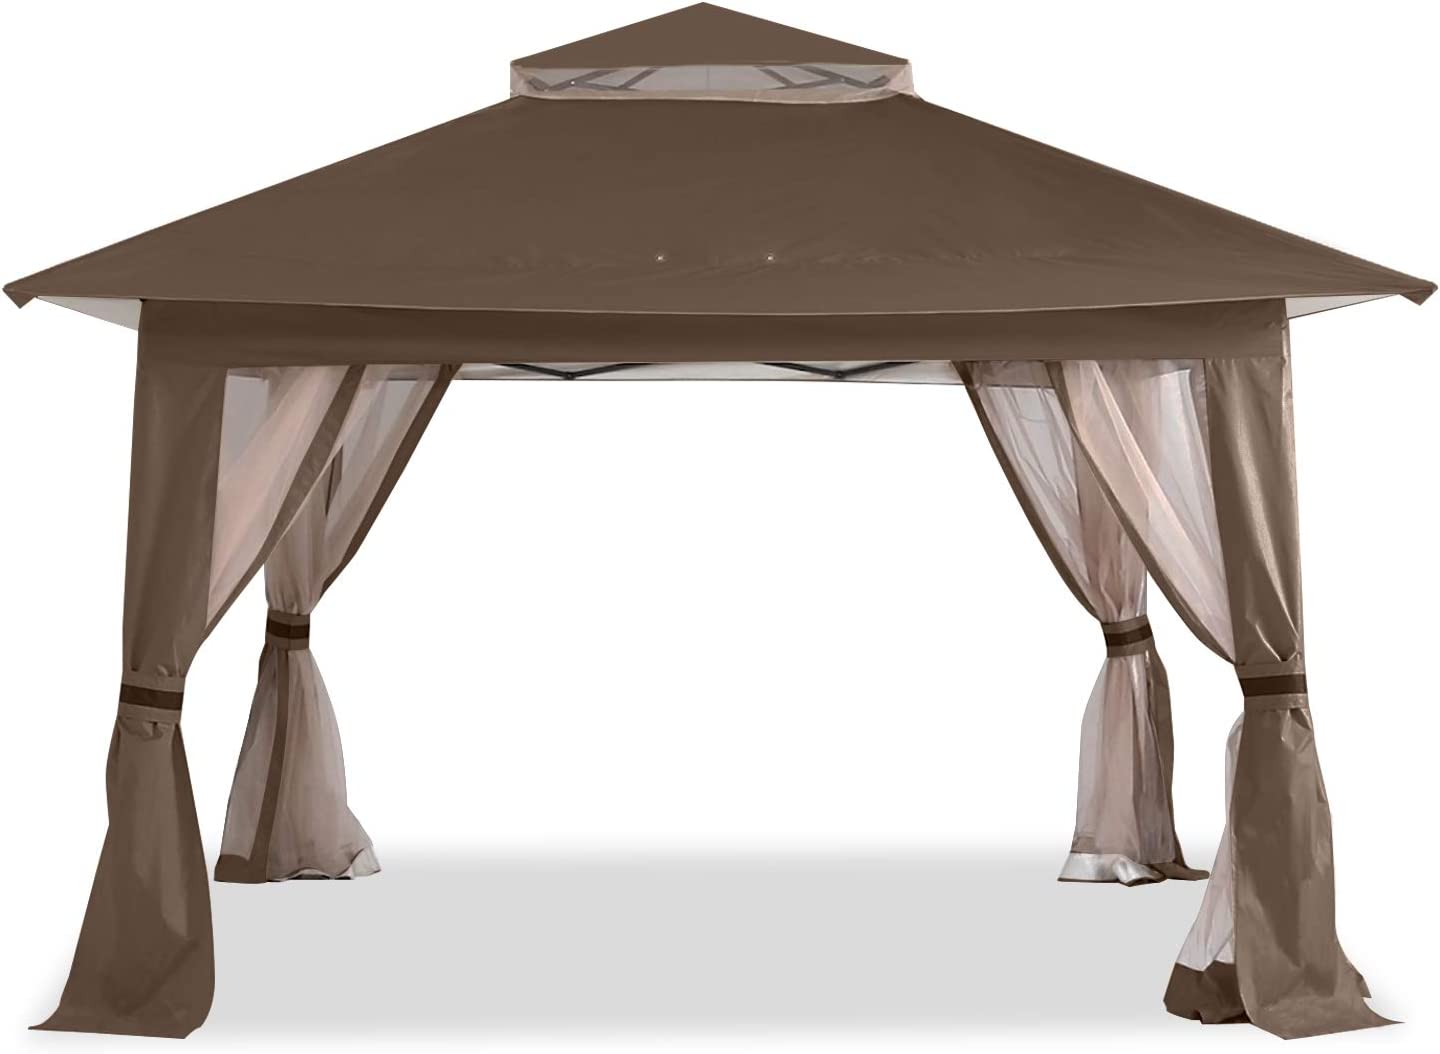 ABCCANOPY 13'x13' Gazebo Tent Outdoor Pop up Gazebo Canopy Shelter with Mosquito Netting (Brown)